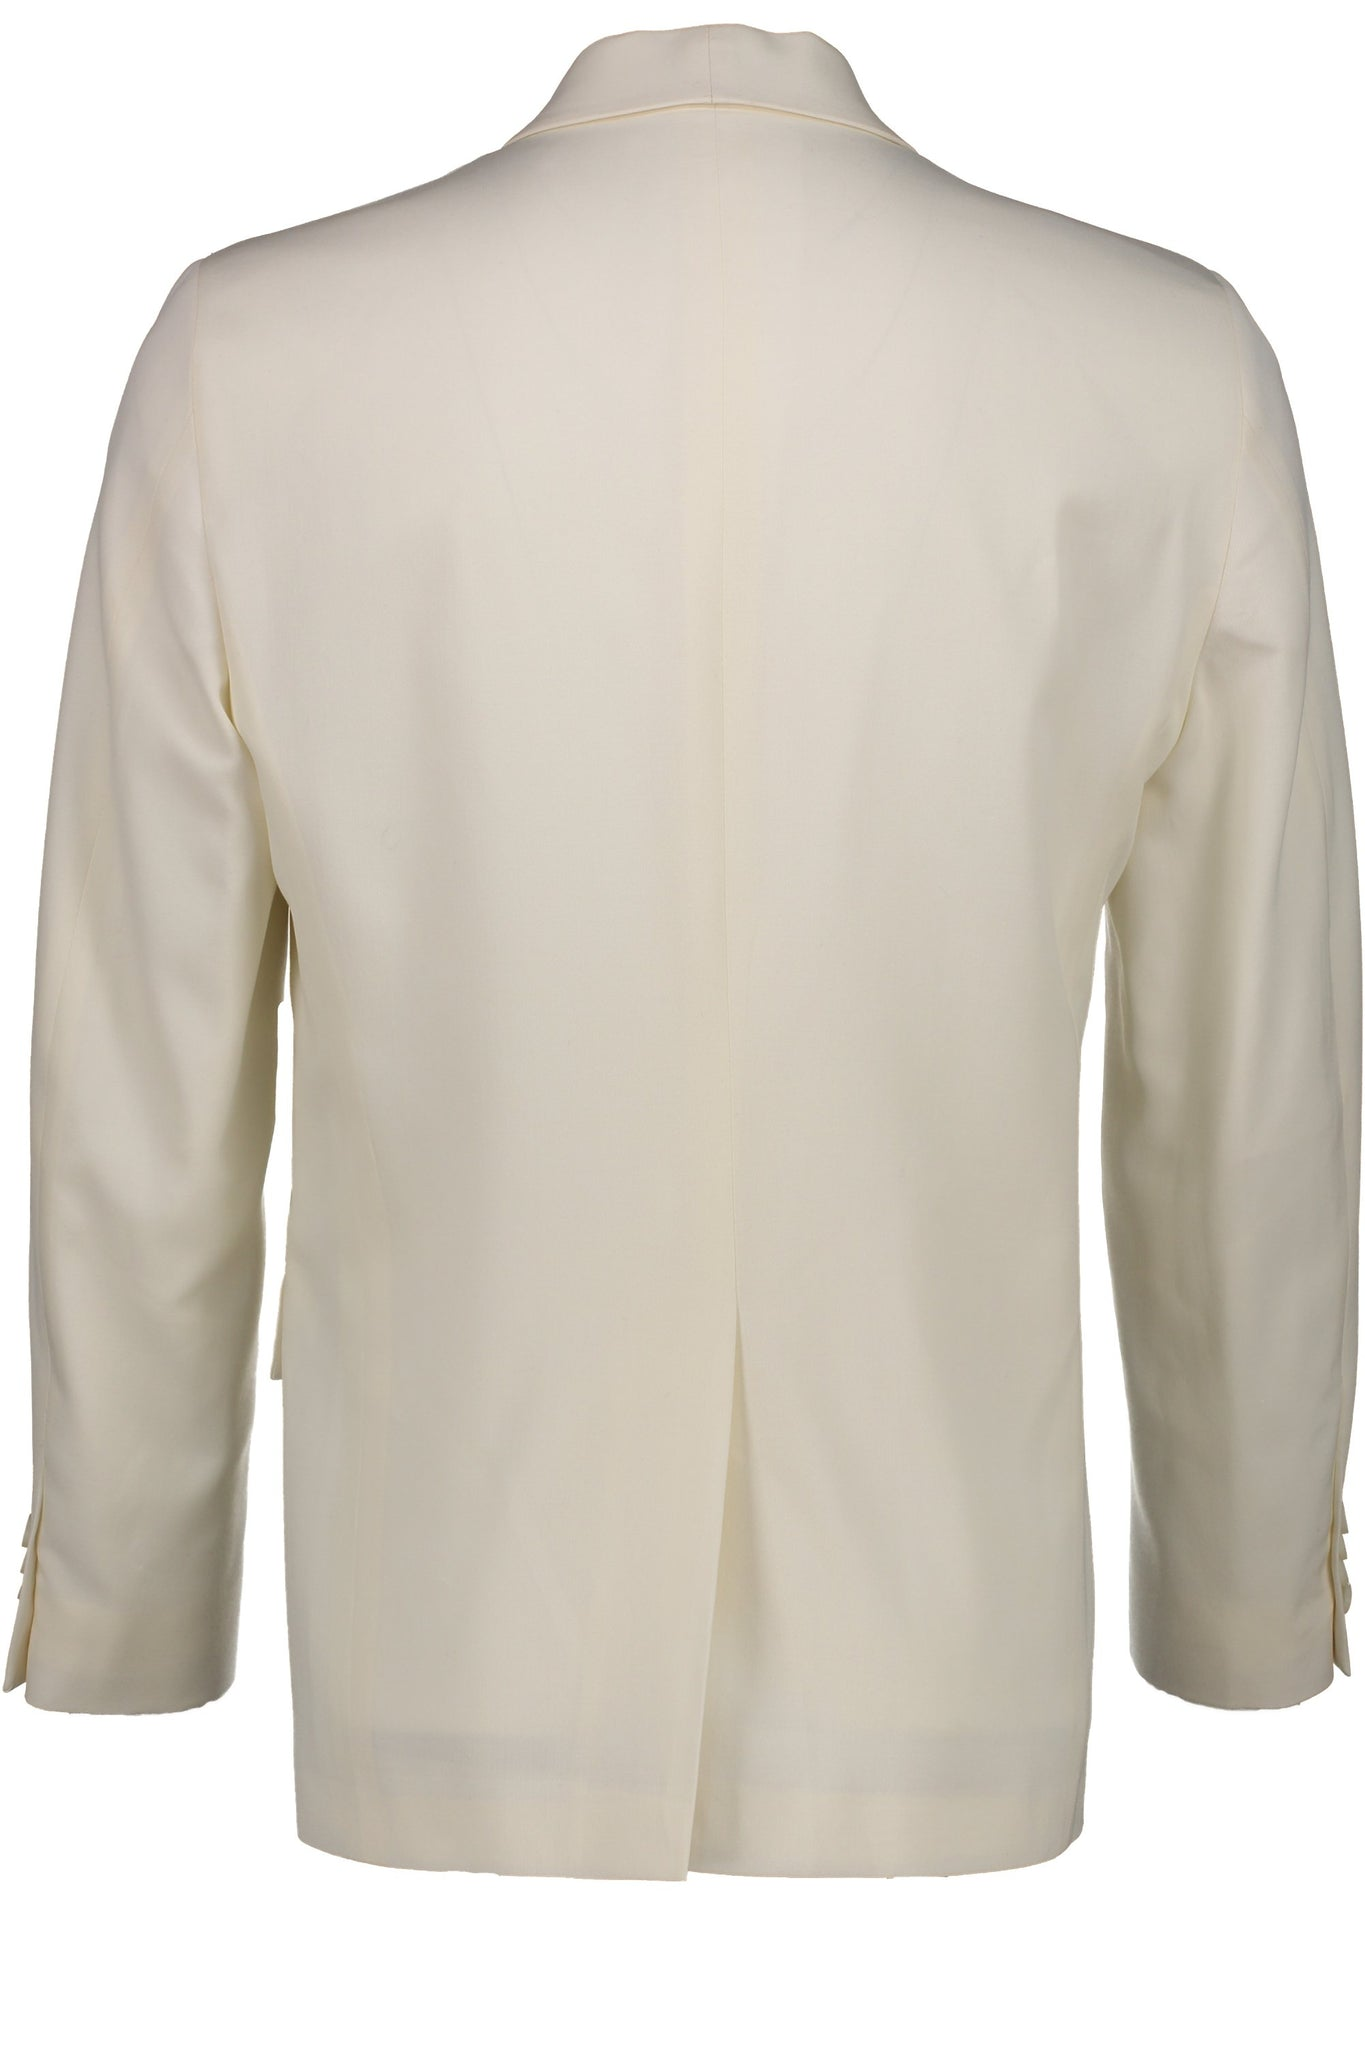 Classic Fit Ivory Wool Dinner Jacket with Cream Satin Shawl Collar -  Hardwick.com